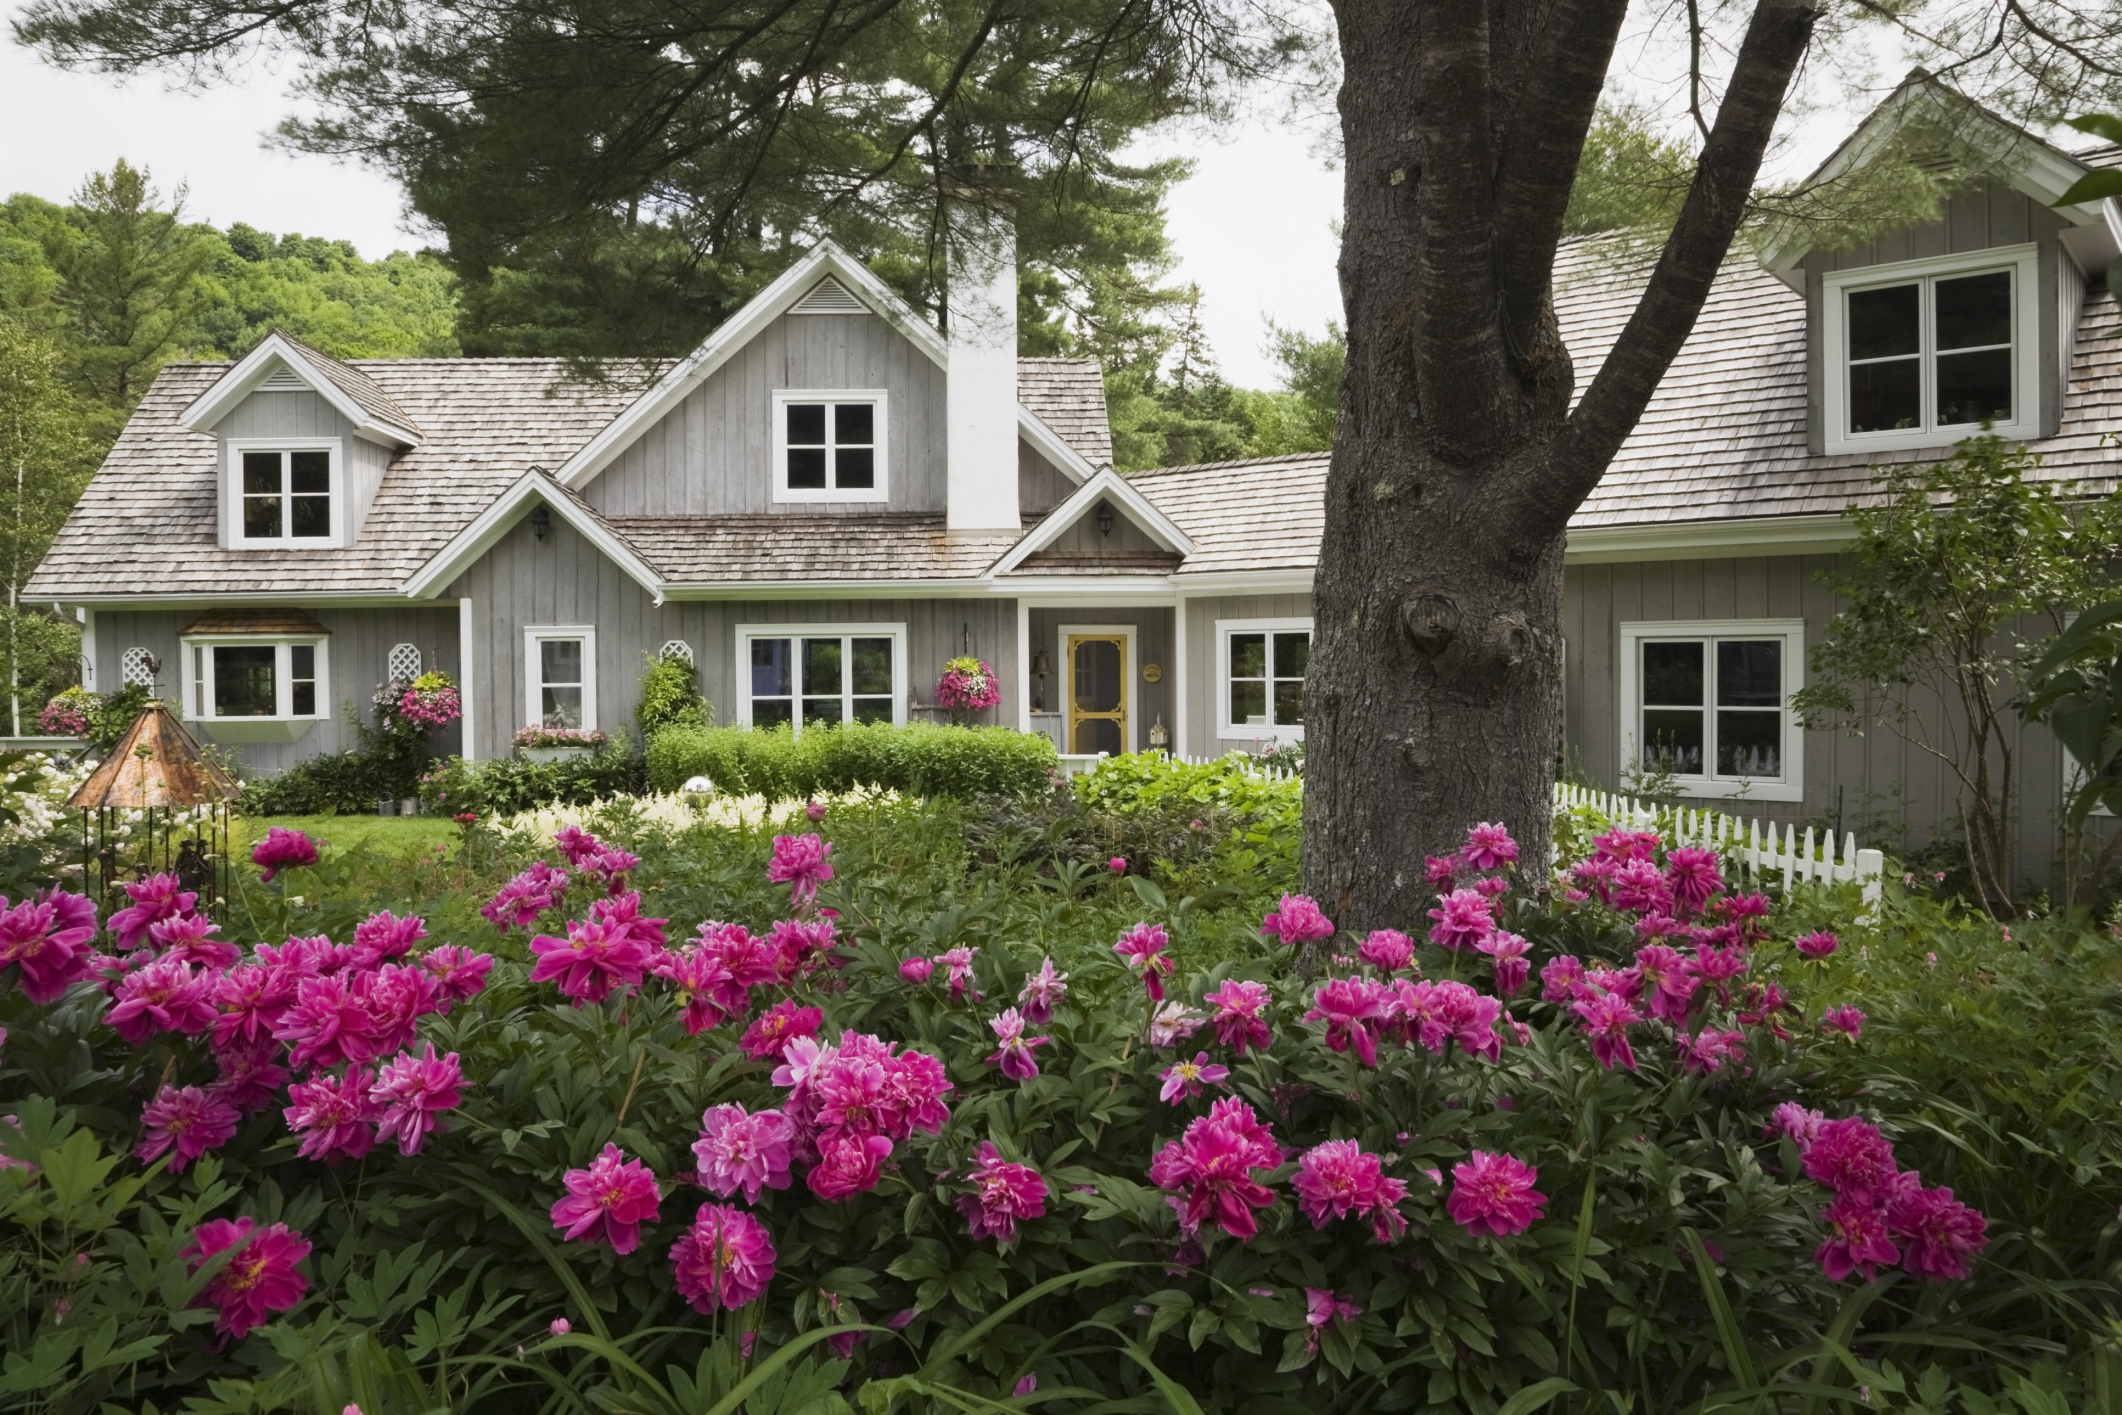 10 Big And Little Ways To Dial Up The Curb Appeal